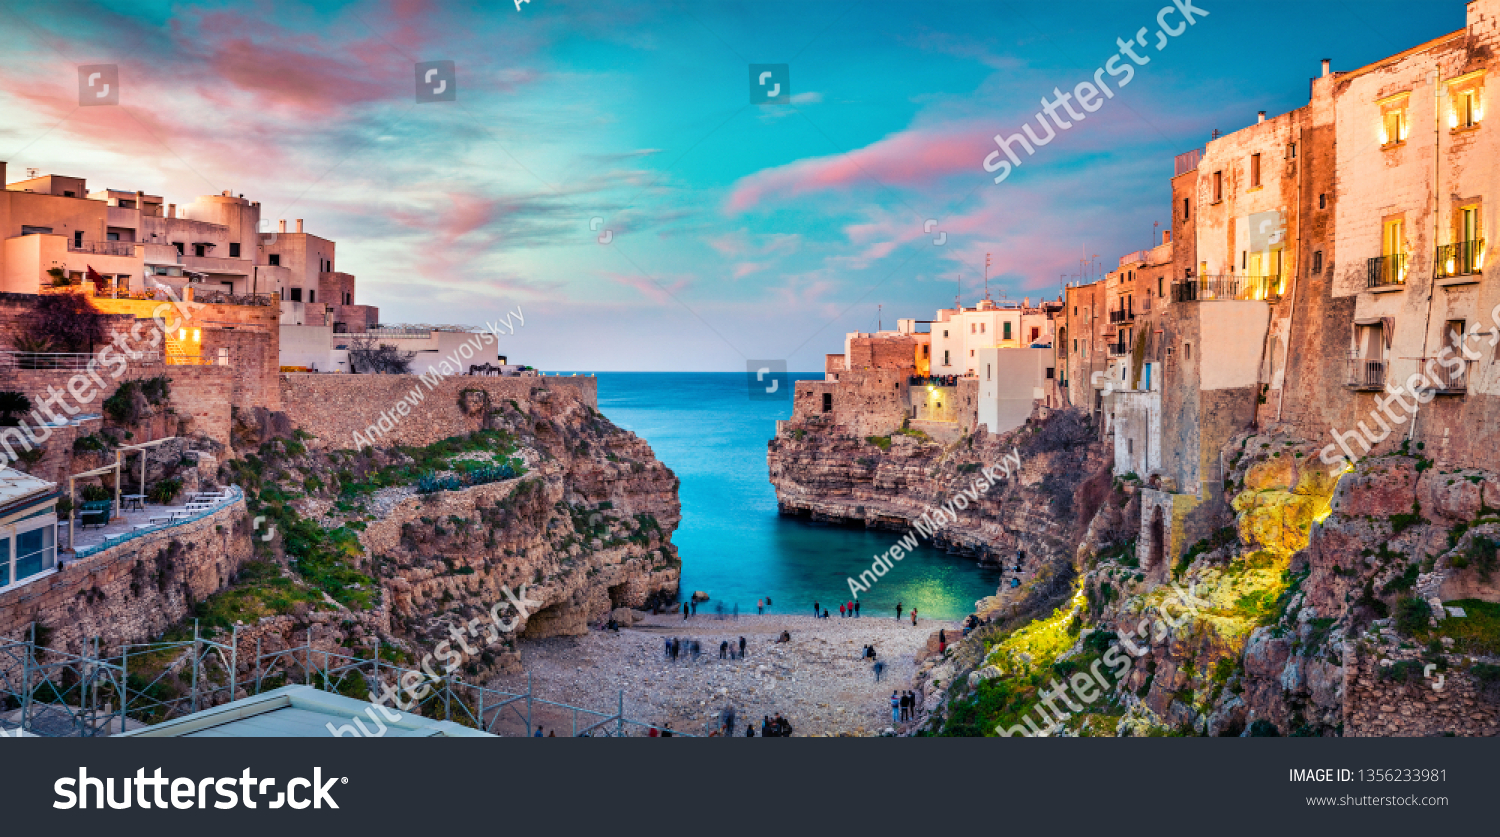 Spectacular spring cityscape of Polignano a Mare town, Puglia region, Italy, Europe. Colorful evening seascape of Adriatic sea. Traveling concept background. #1356233981